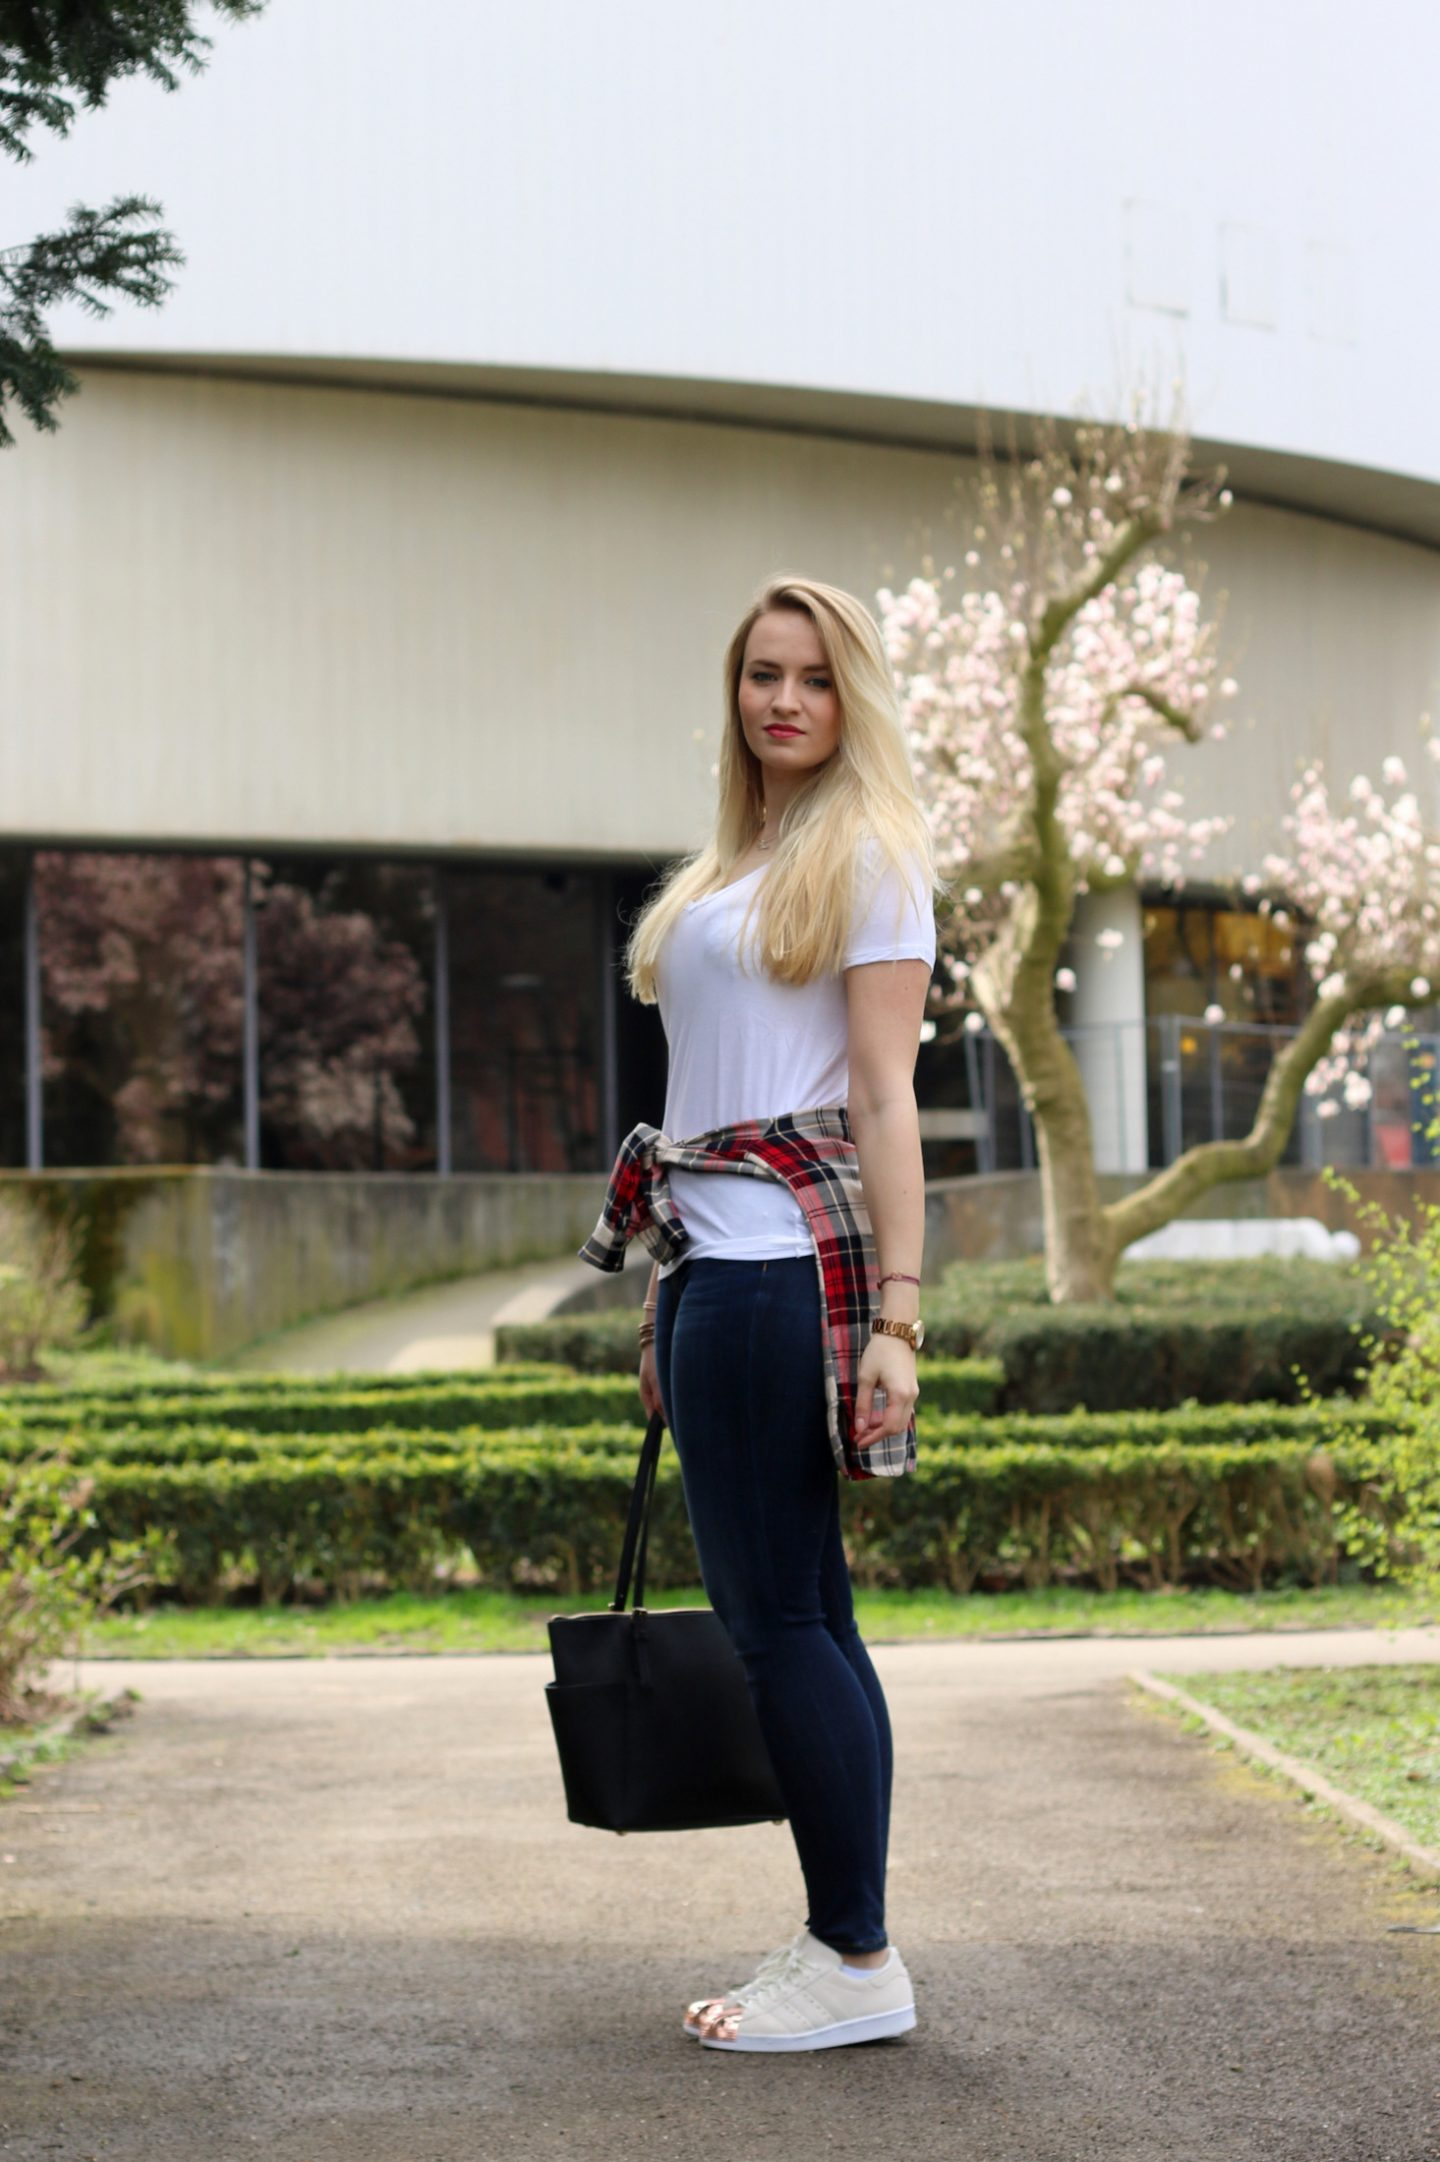 plain-shirt-white-tee-jeans-casual-look-outfit-ootd-blogger-mrsbrightside (1)